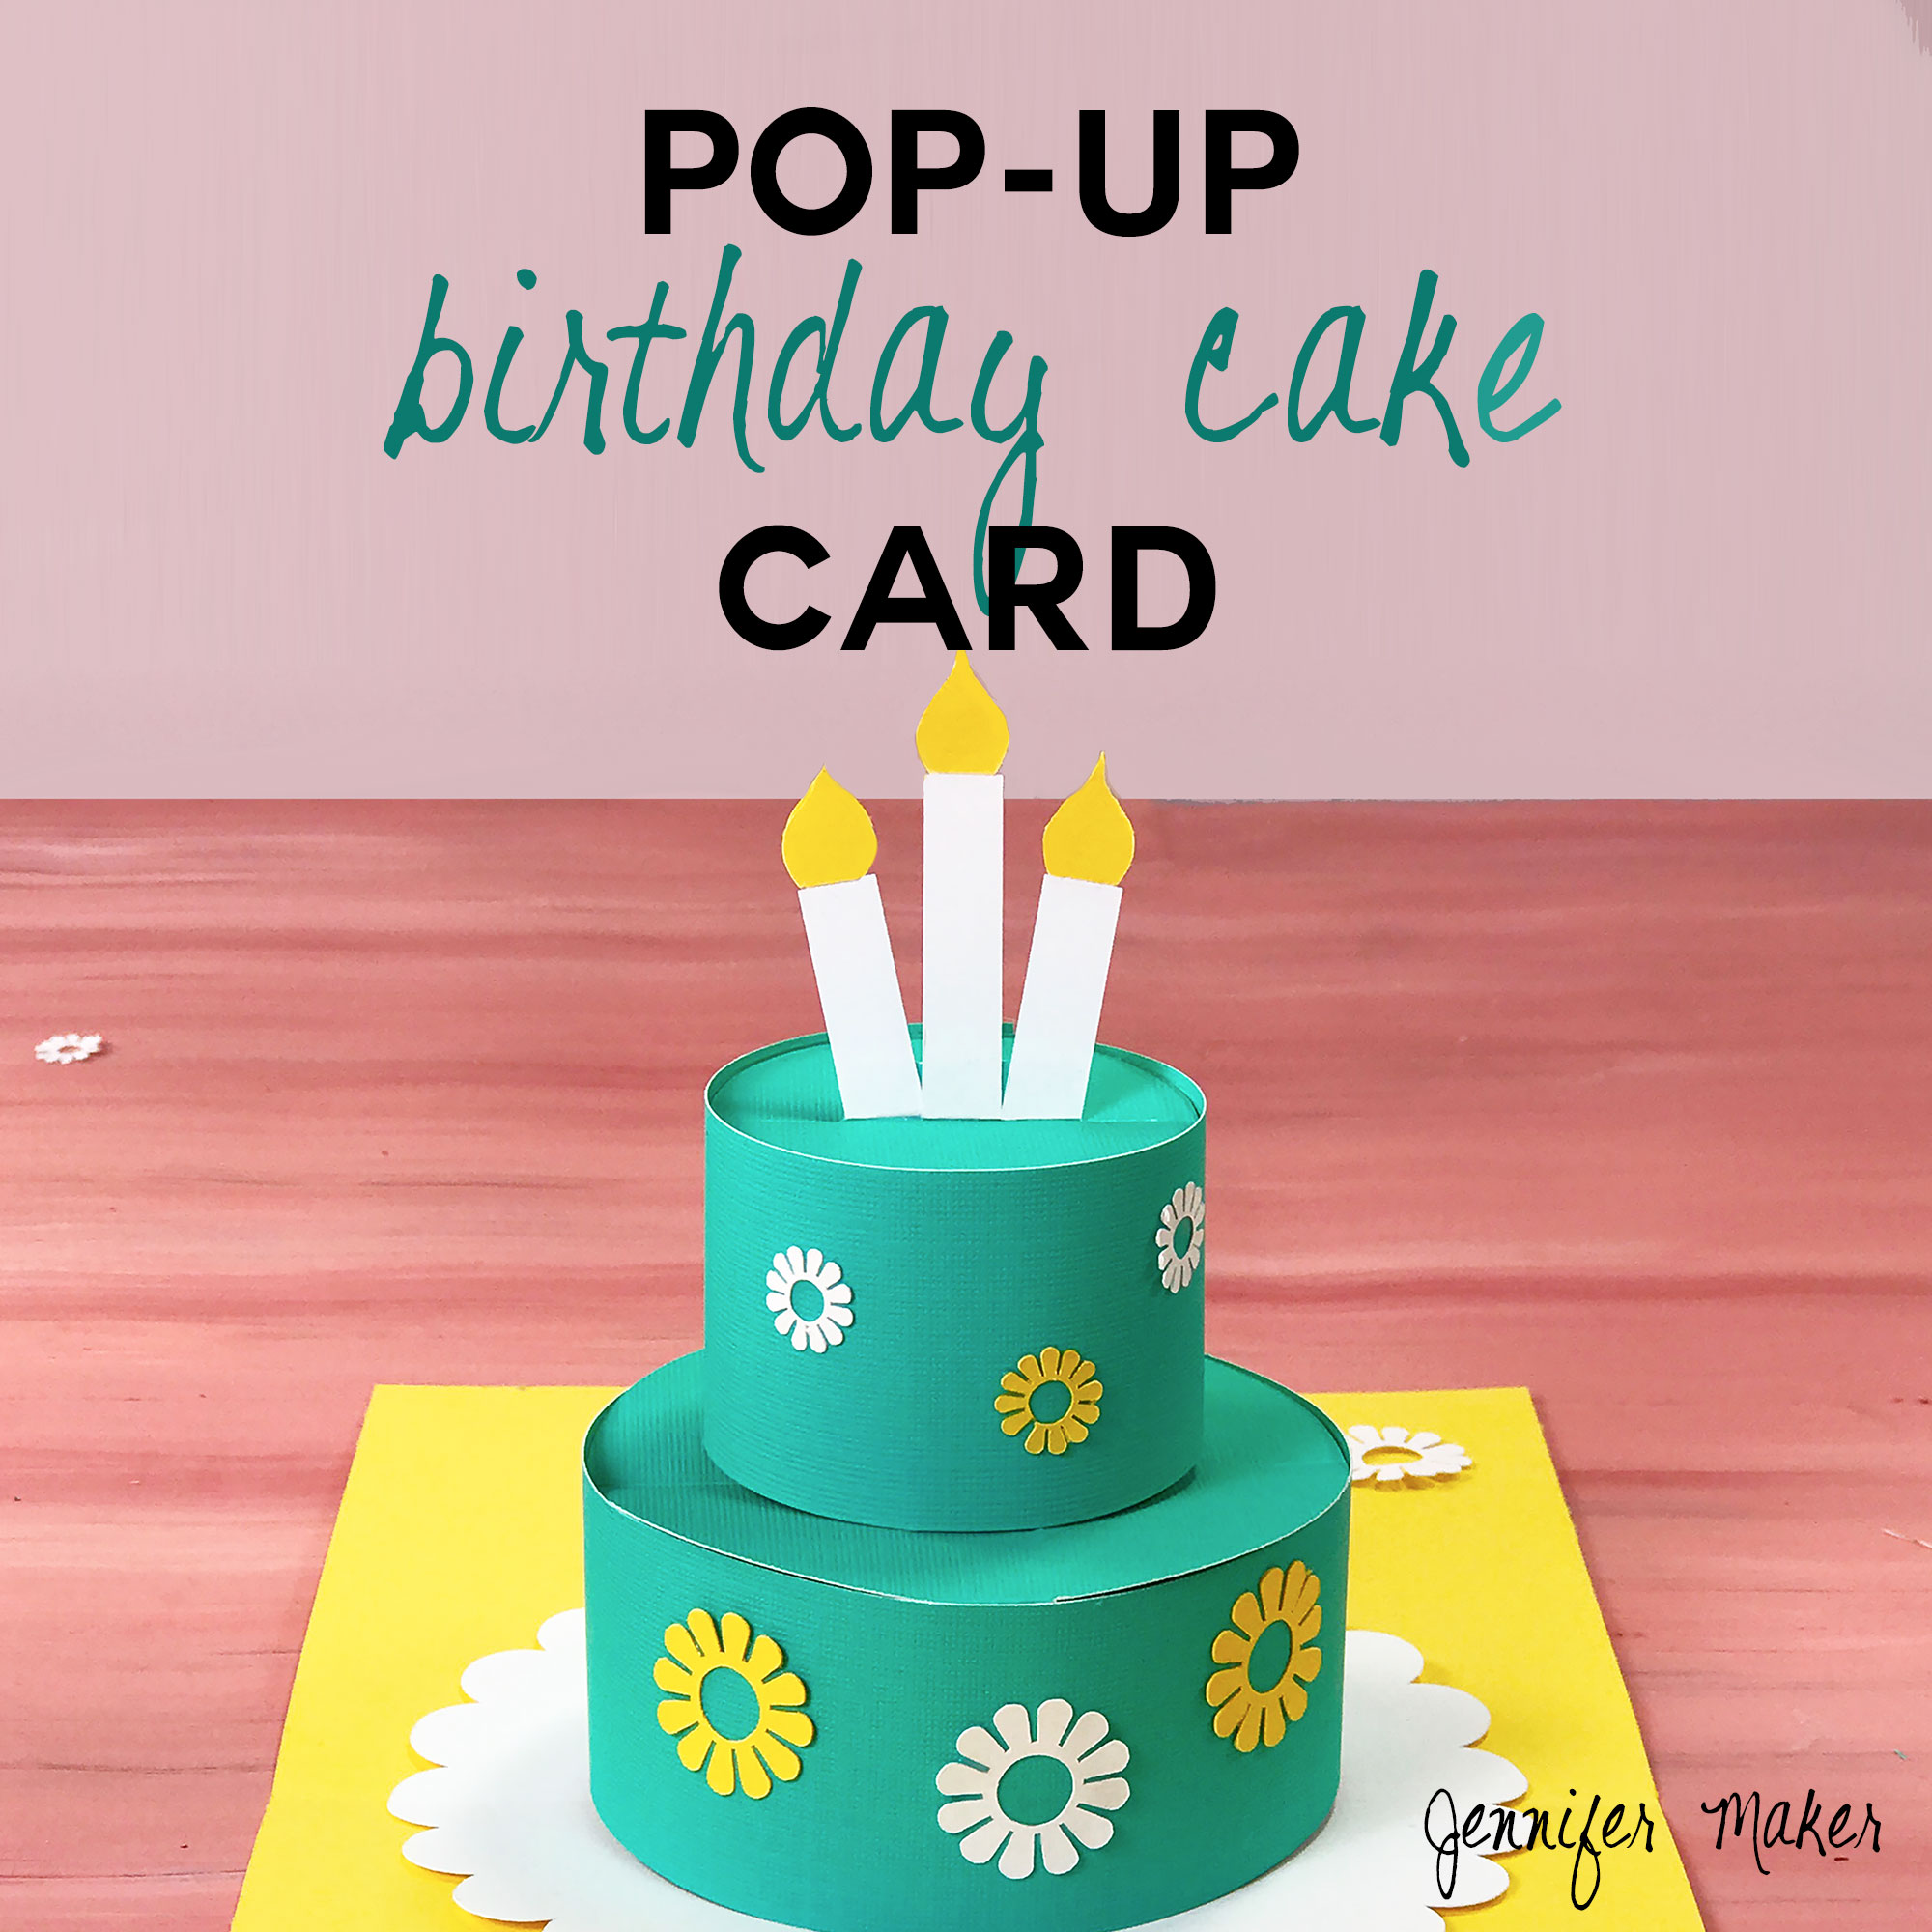 Astounding How To Make A Pop Up Birthday Cake Card Jennifer Maker Funny Birthday Cards Online Inifodamsfinfo